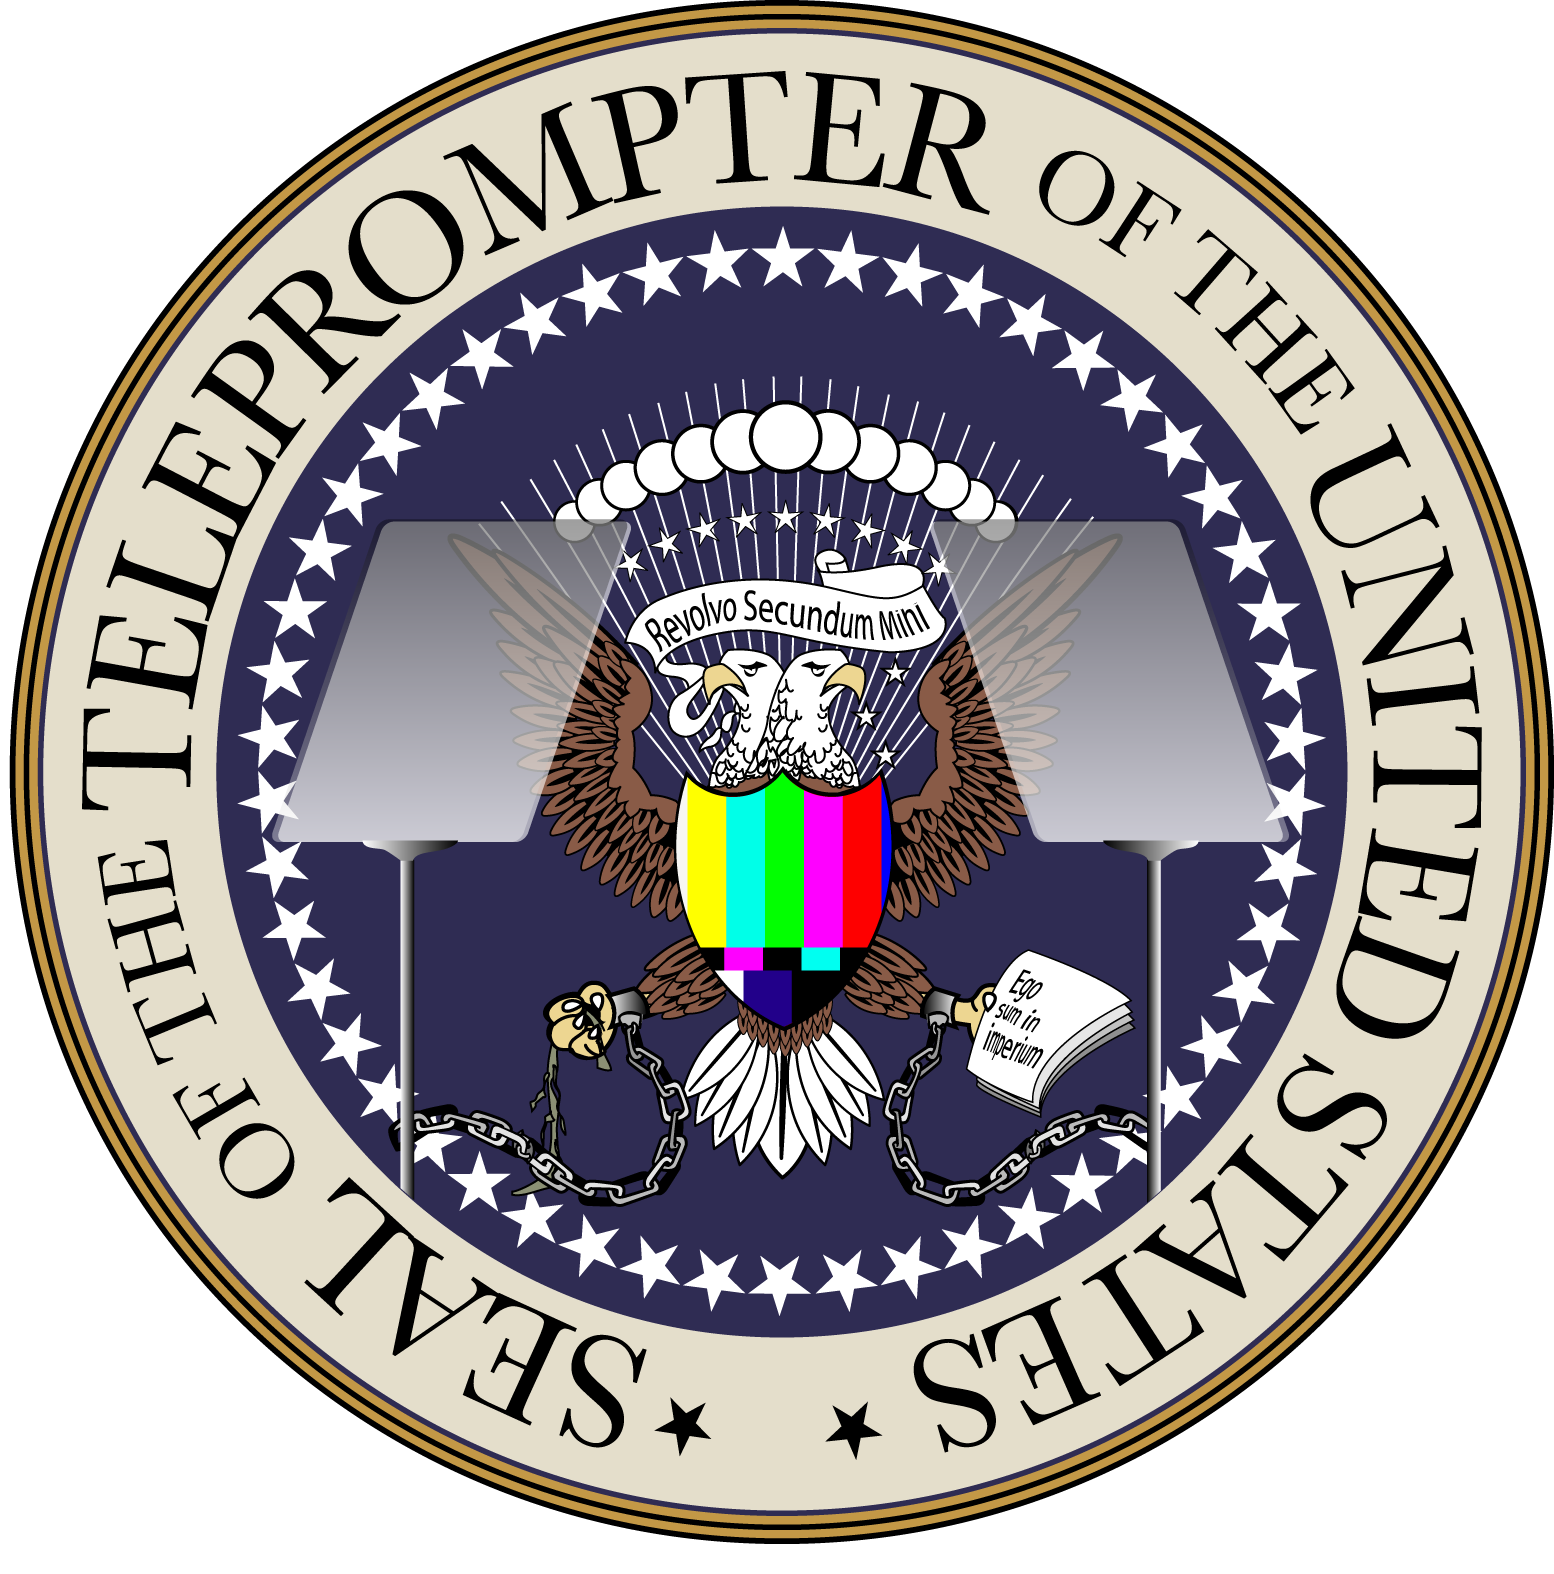 Seal of the united states png. Official teleprompter mike moody